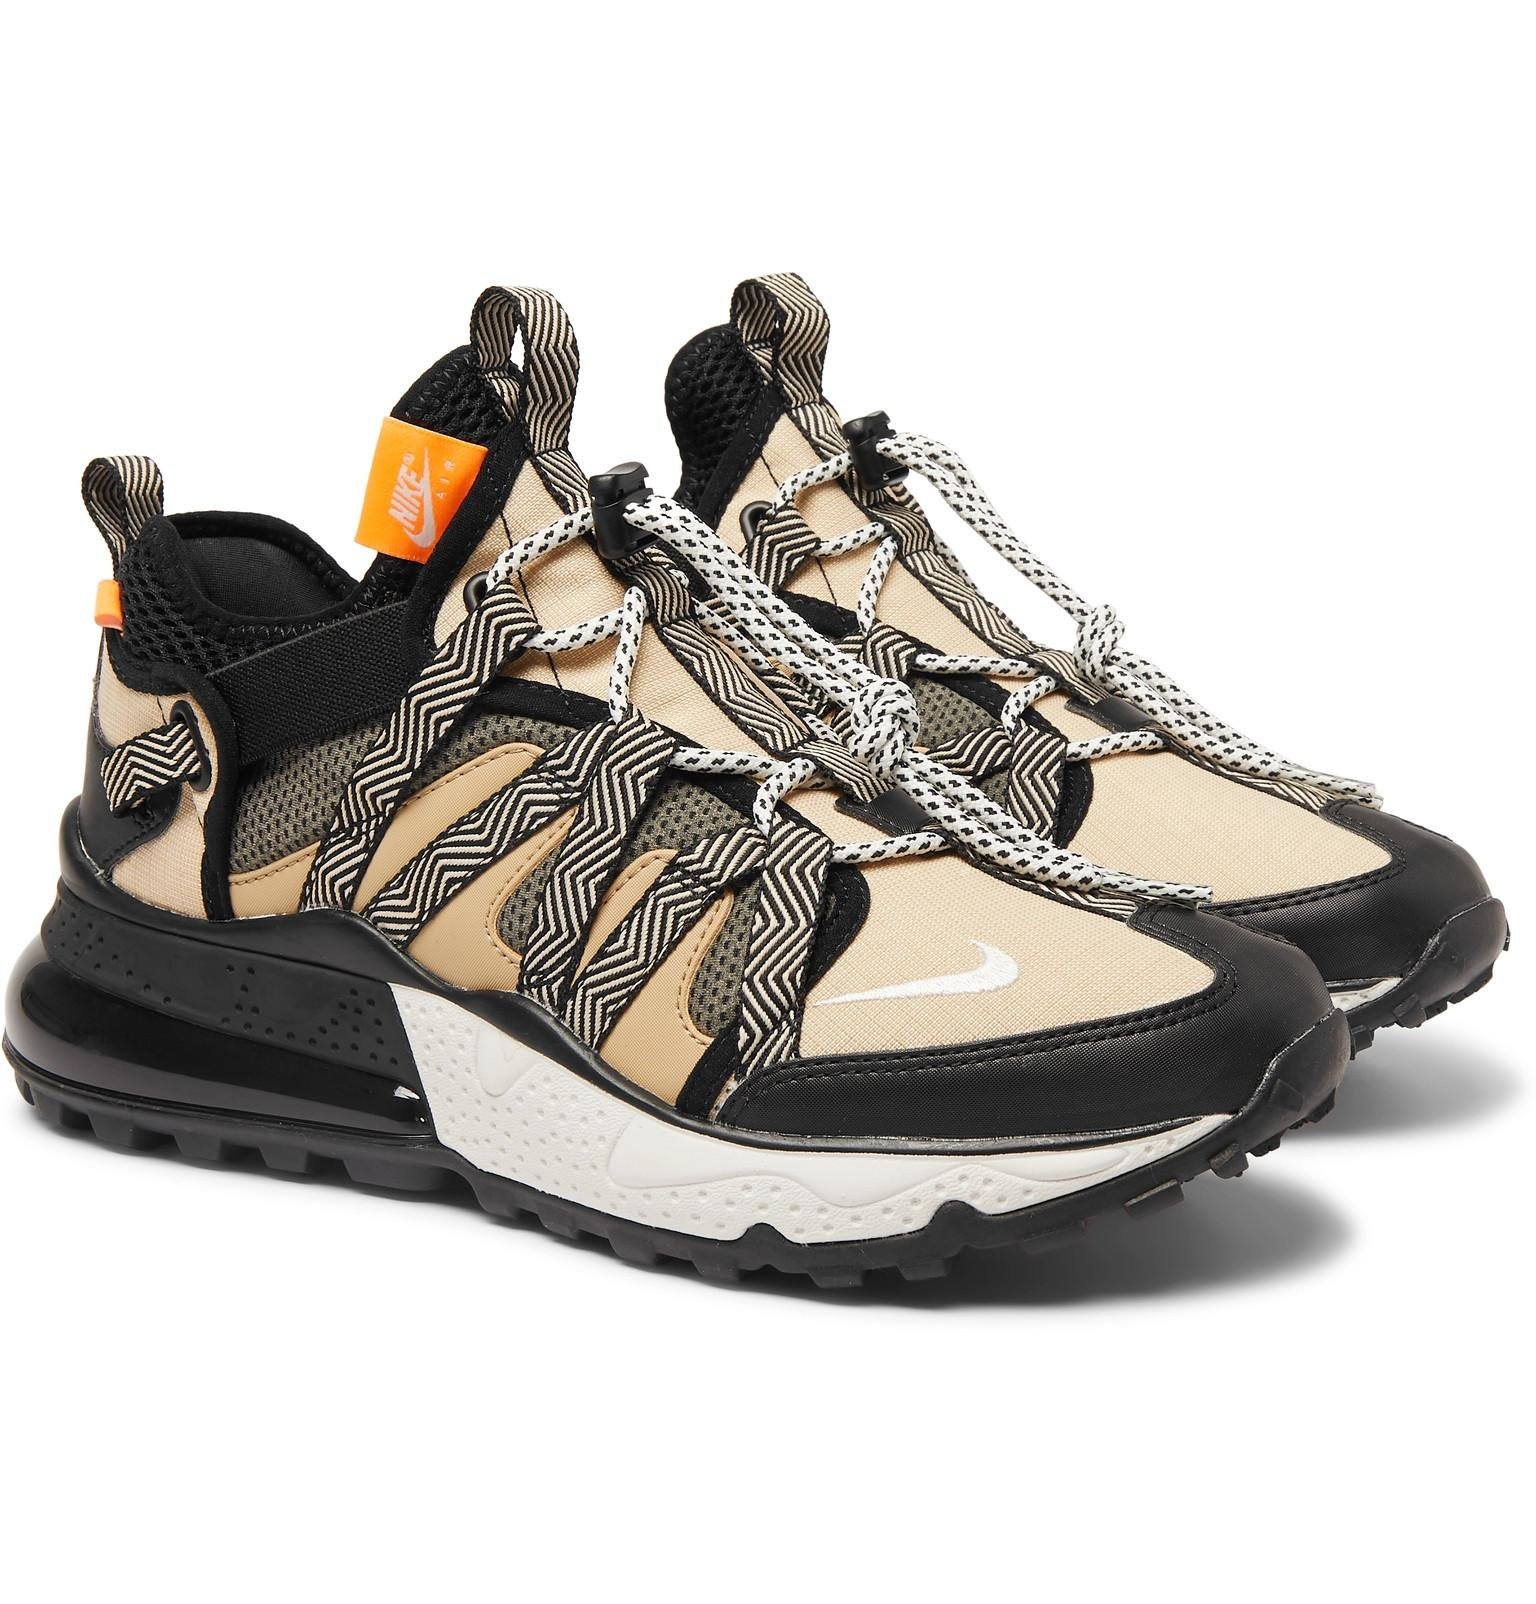 Nike Air Max 270 Bowfin Mesh And Nylon Sneakers for Men - Lyst 34004cfcb